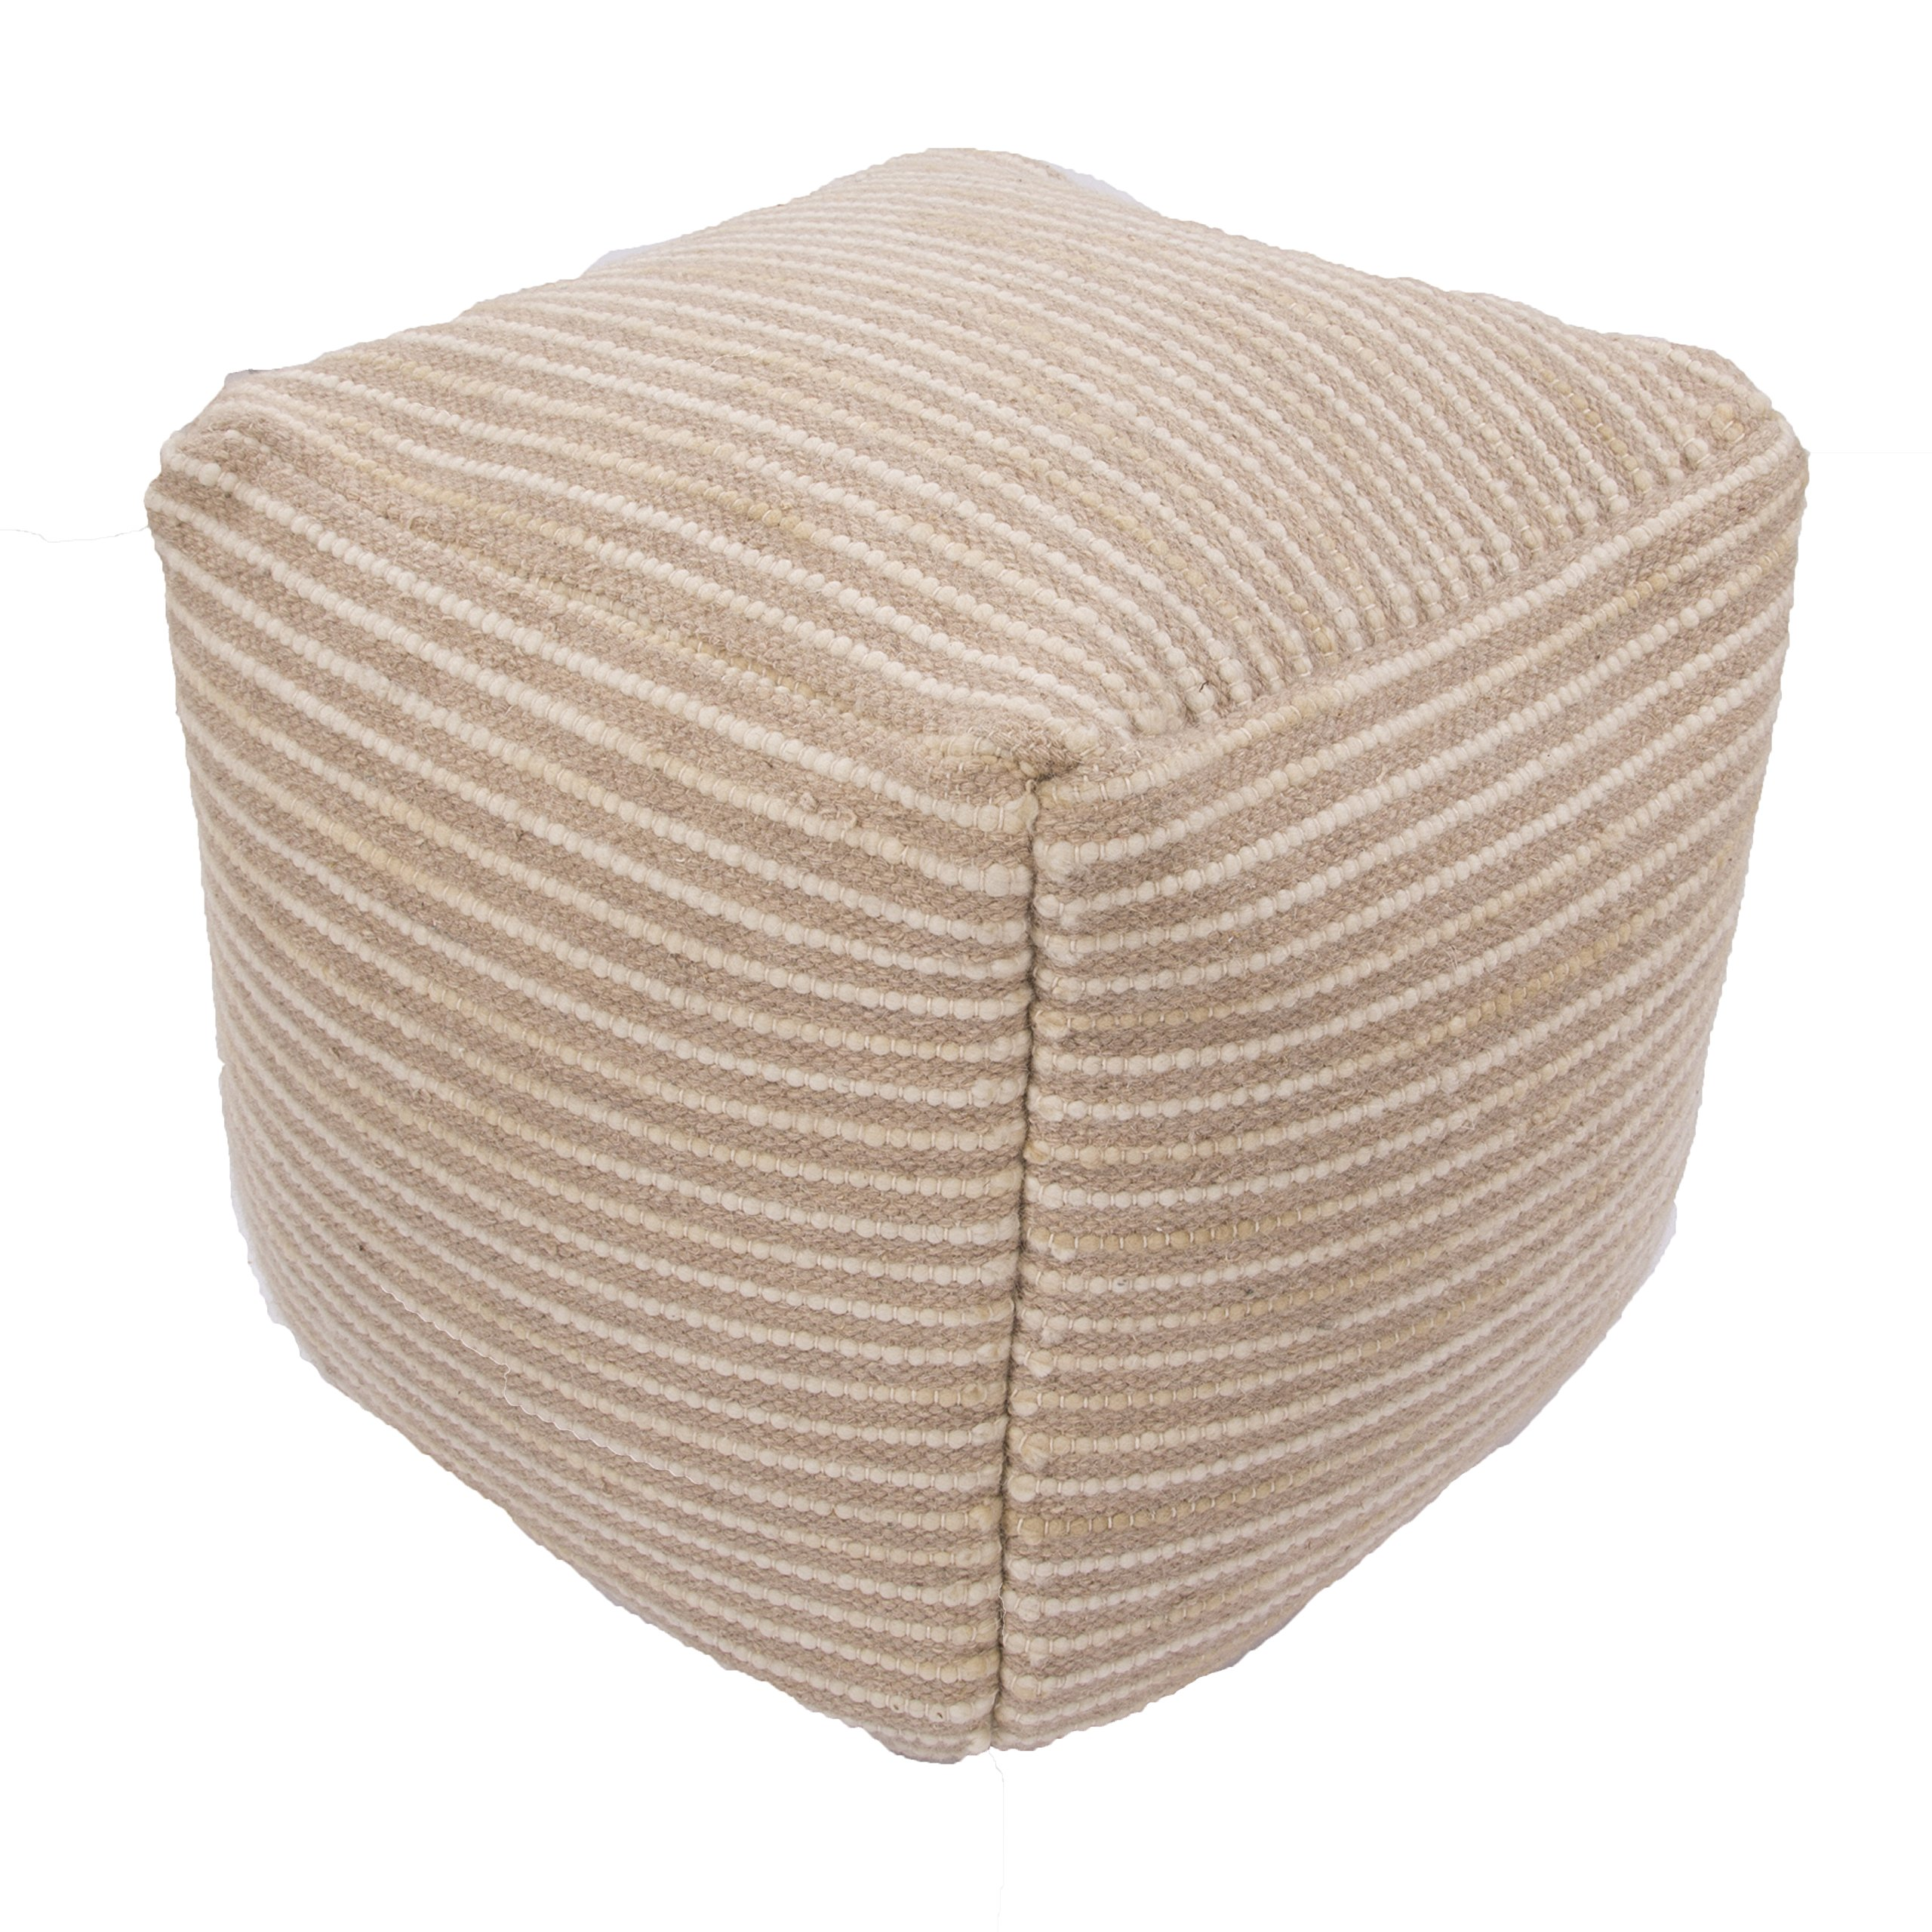 Jaipur Textural Pattern Tan Wool and Cotton Pouf, 18-Inch x 18-Inch x 18-Inch, Sand Shell Almi